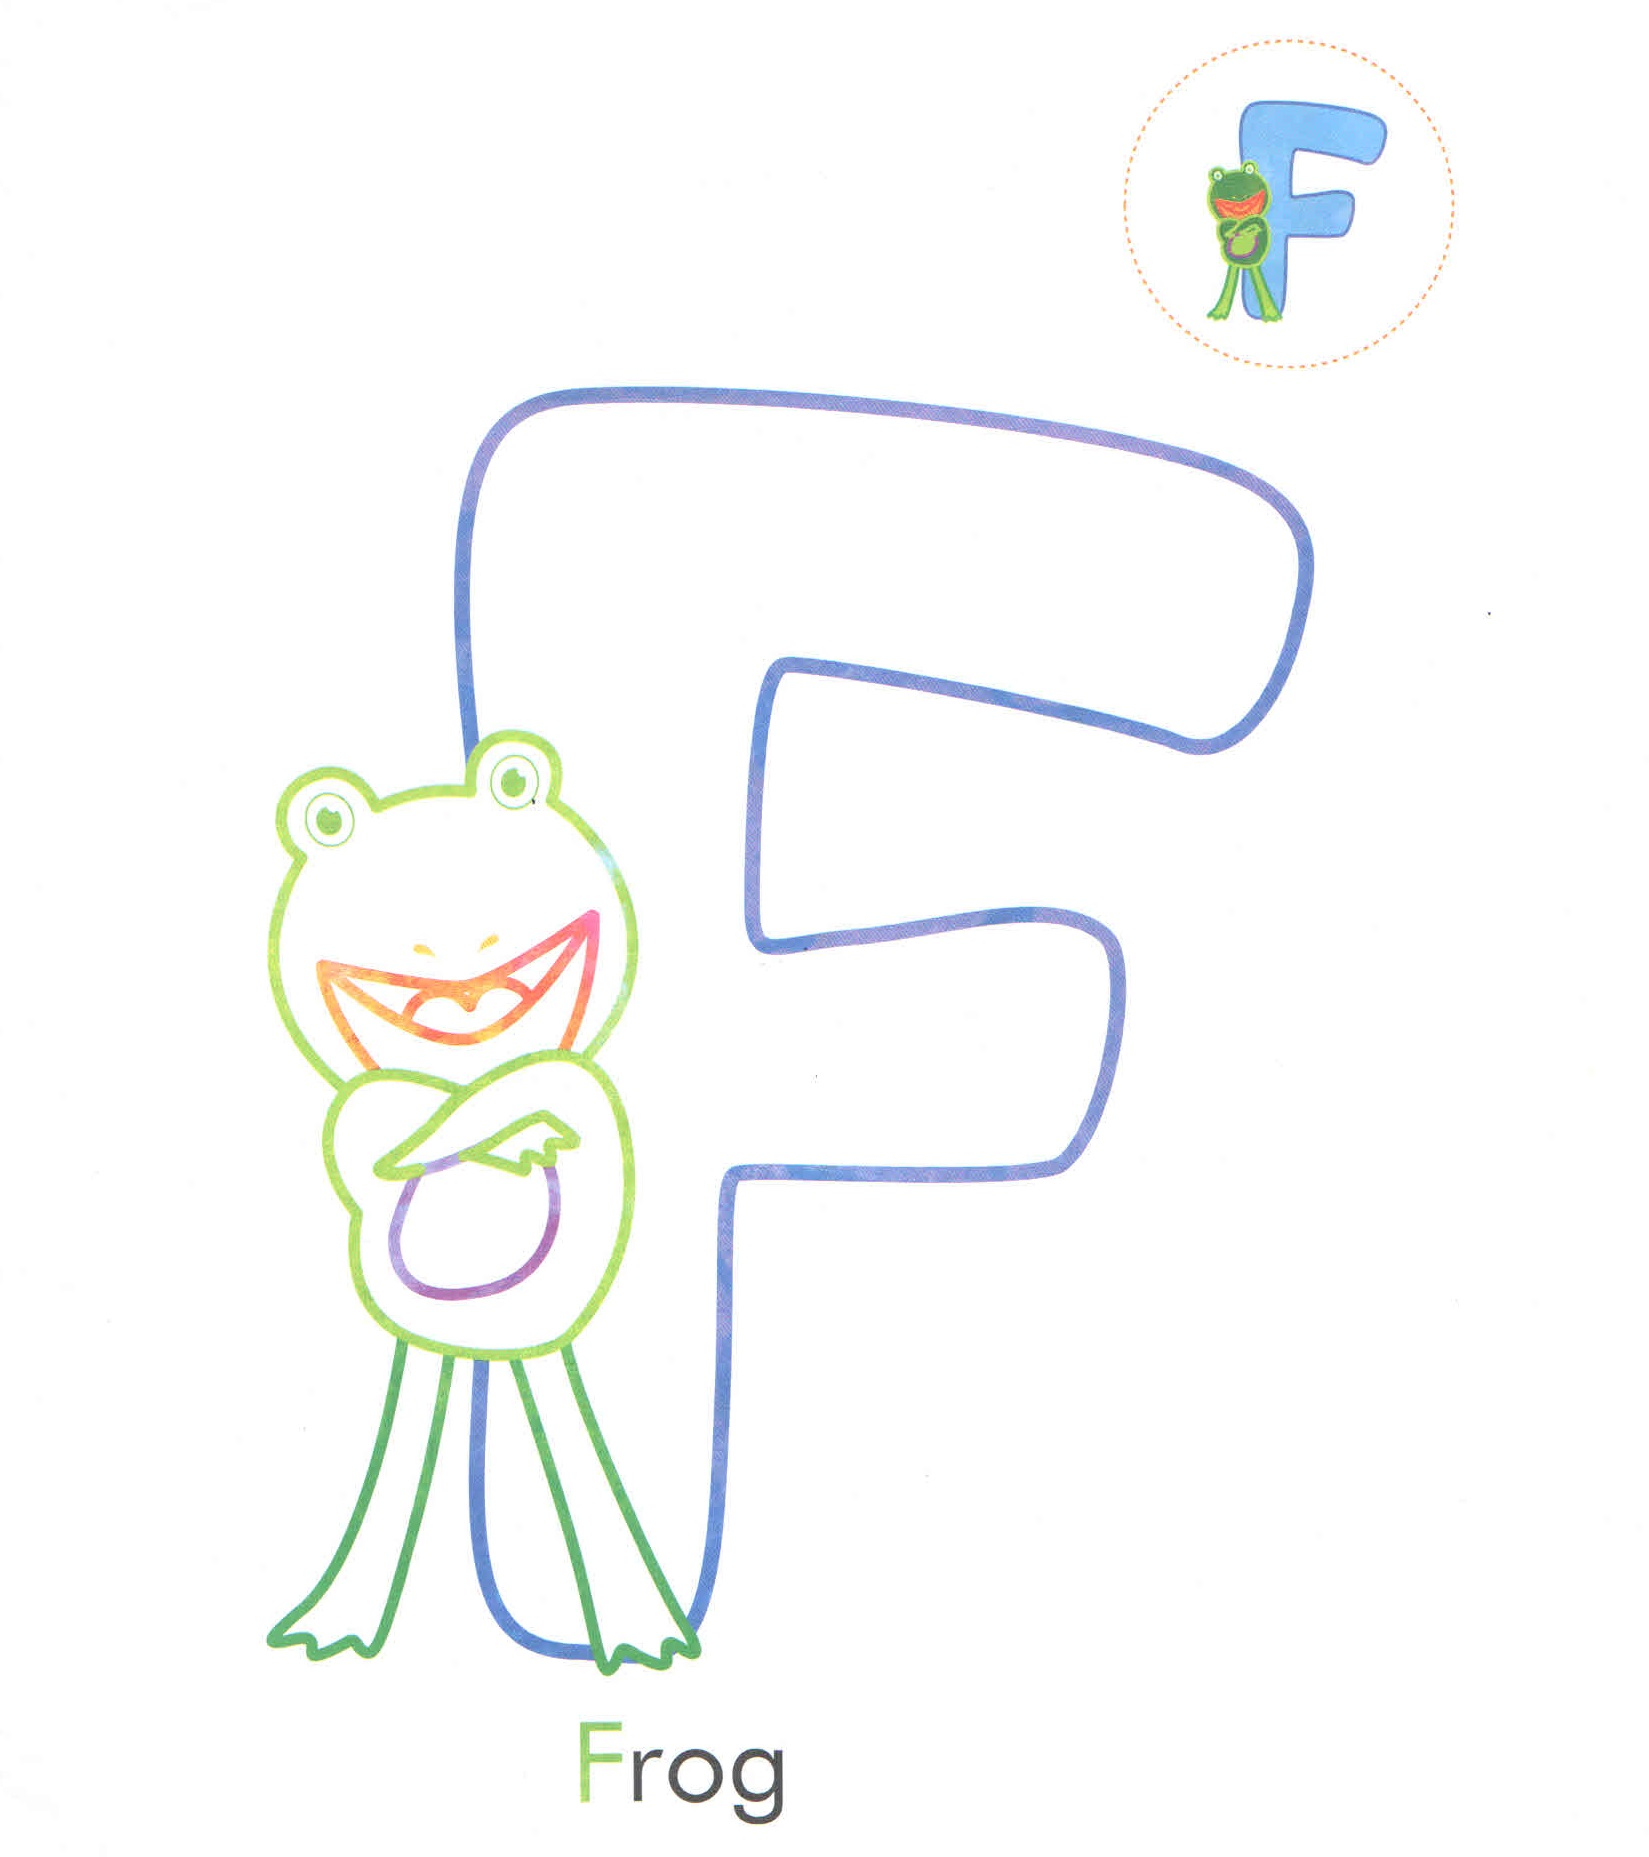 Coloring Site With Frog Print Out Free To F Is For Frog F Is For Frog F Is For Frog Coloring Page